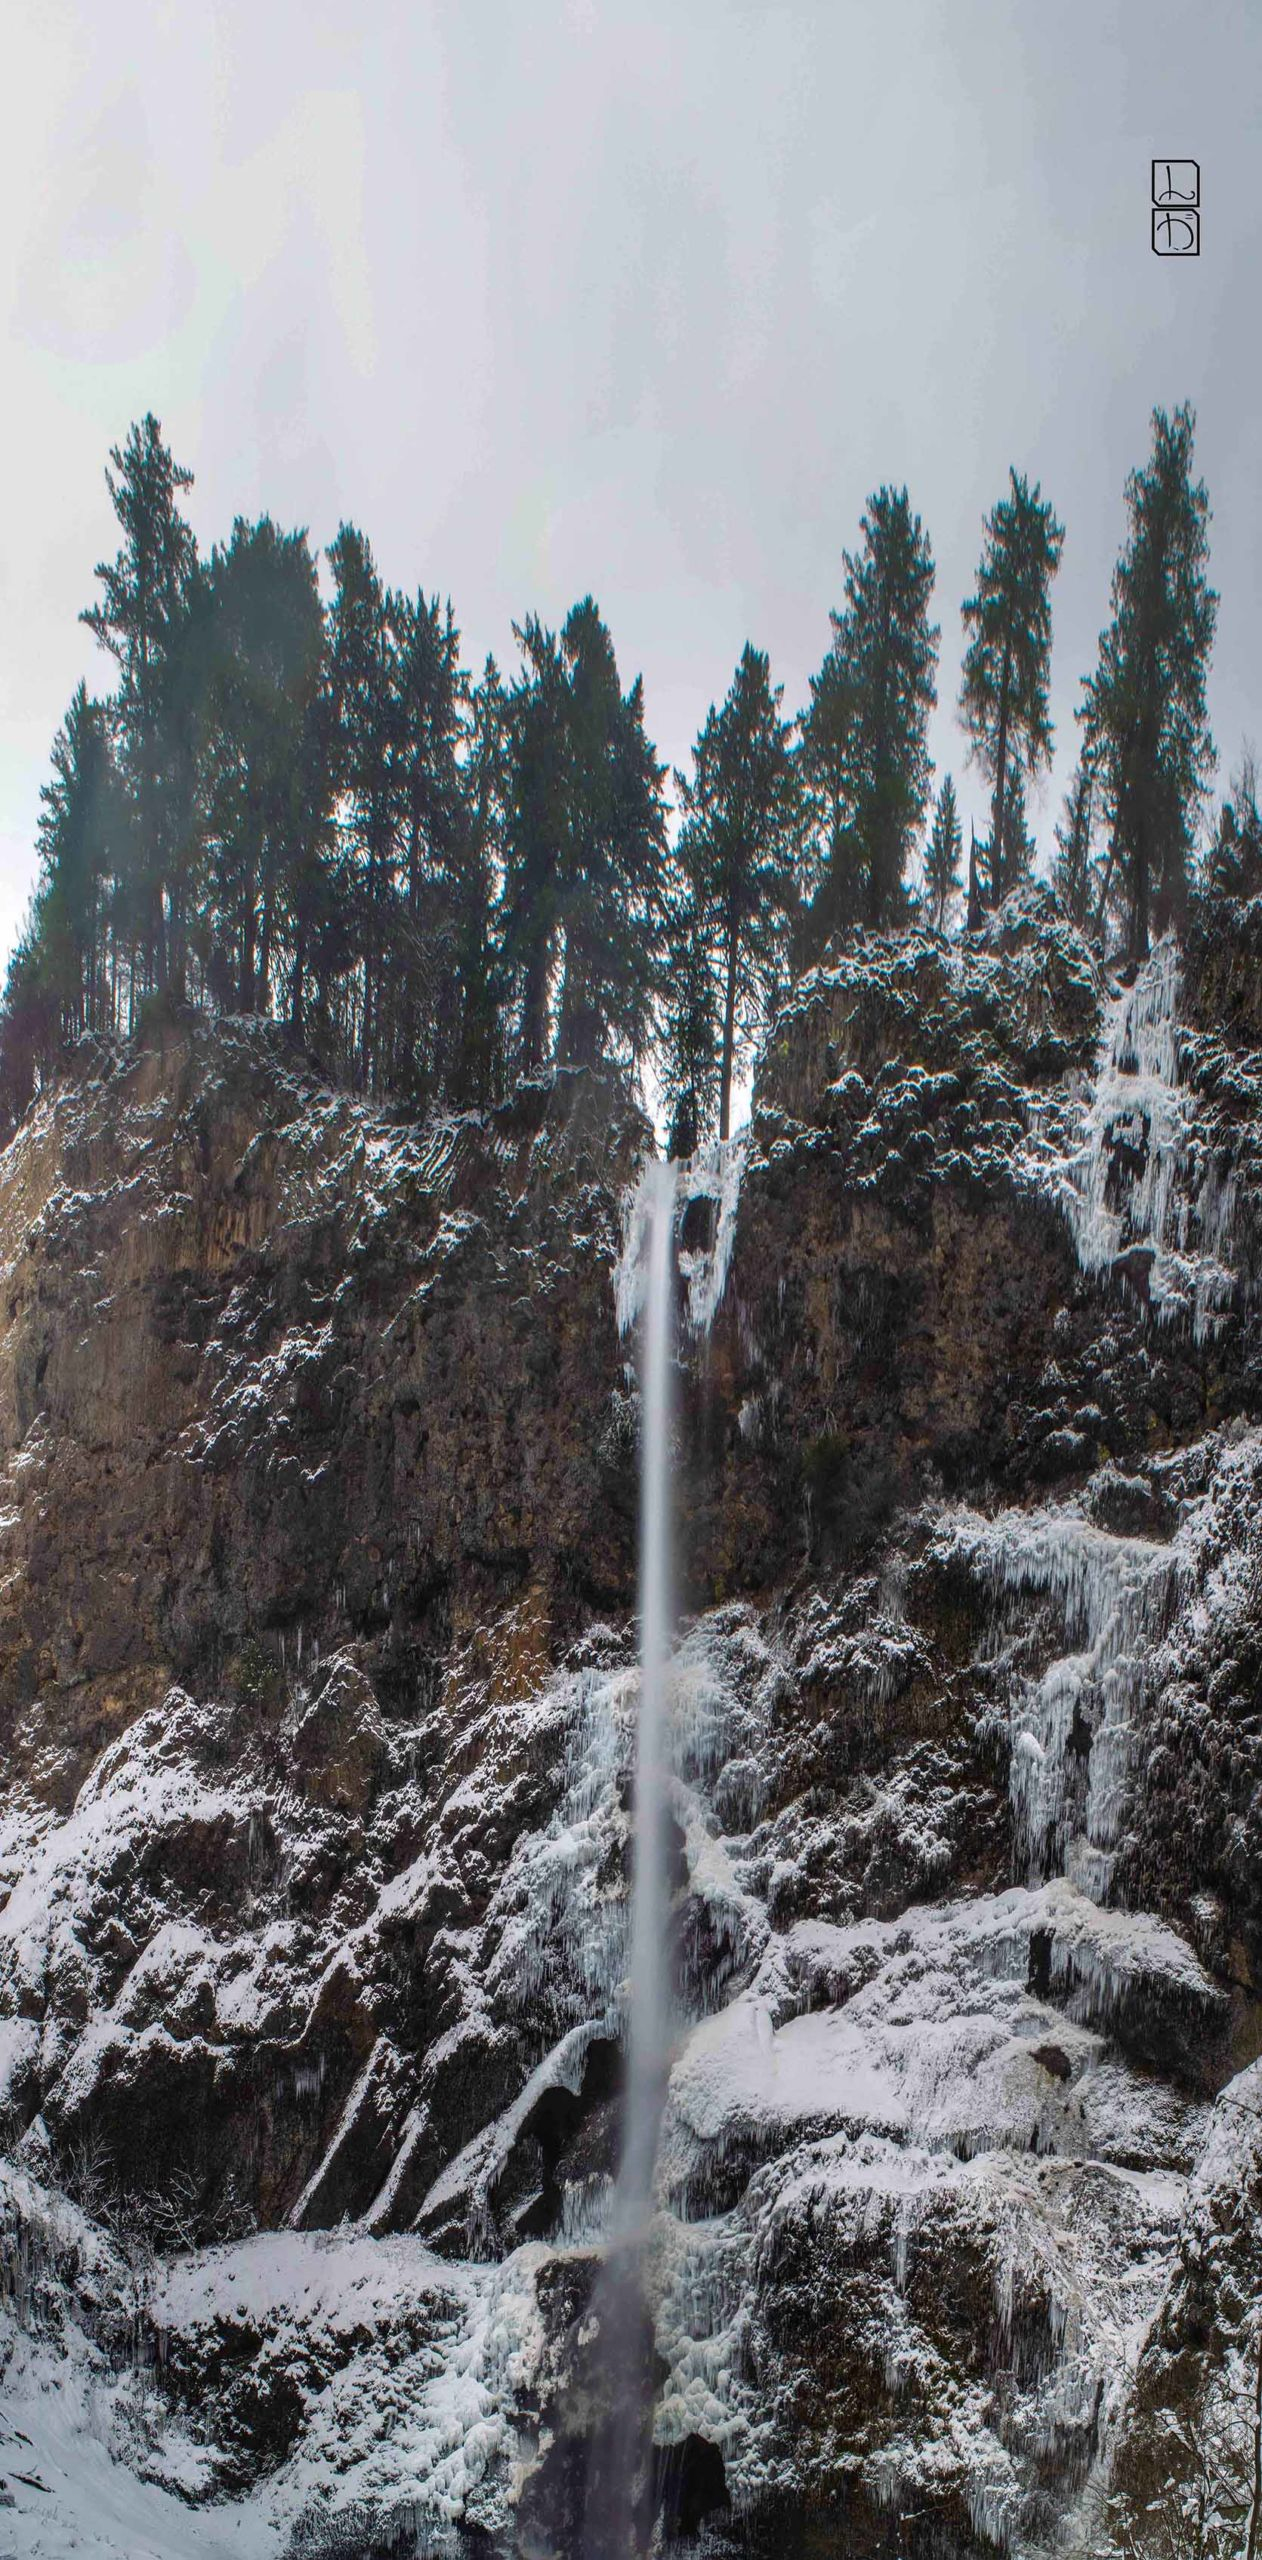 Wide angle photomerge of Multnomah Falls in the snowy, icy winter